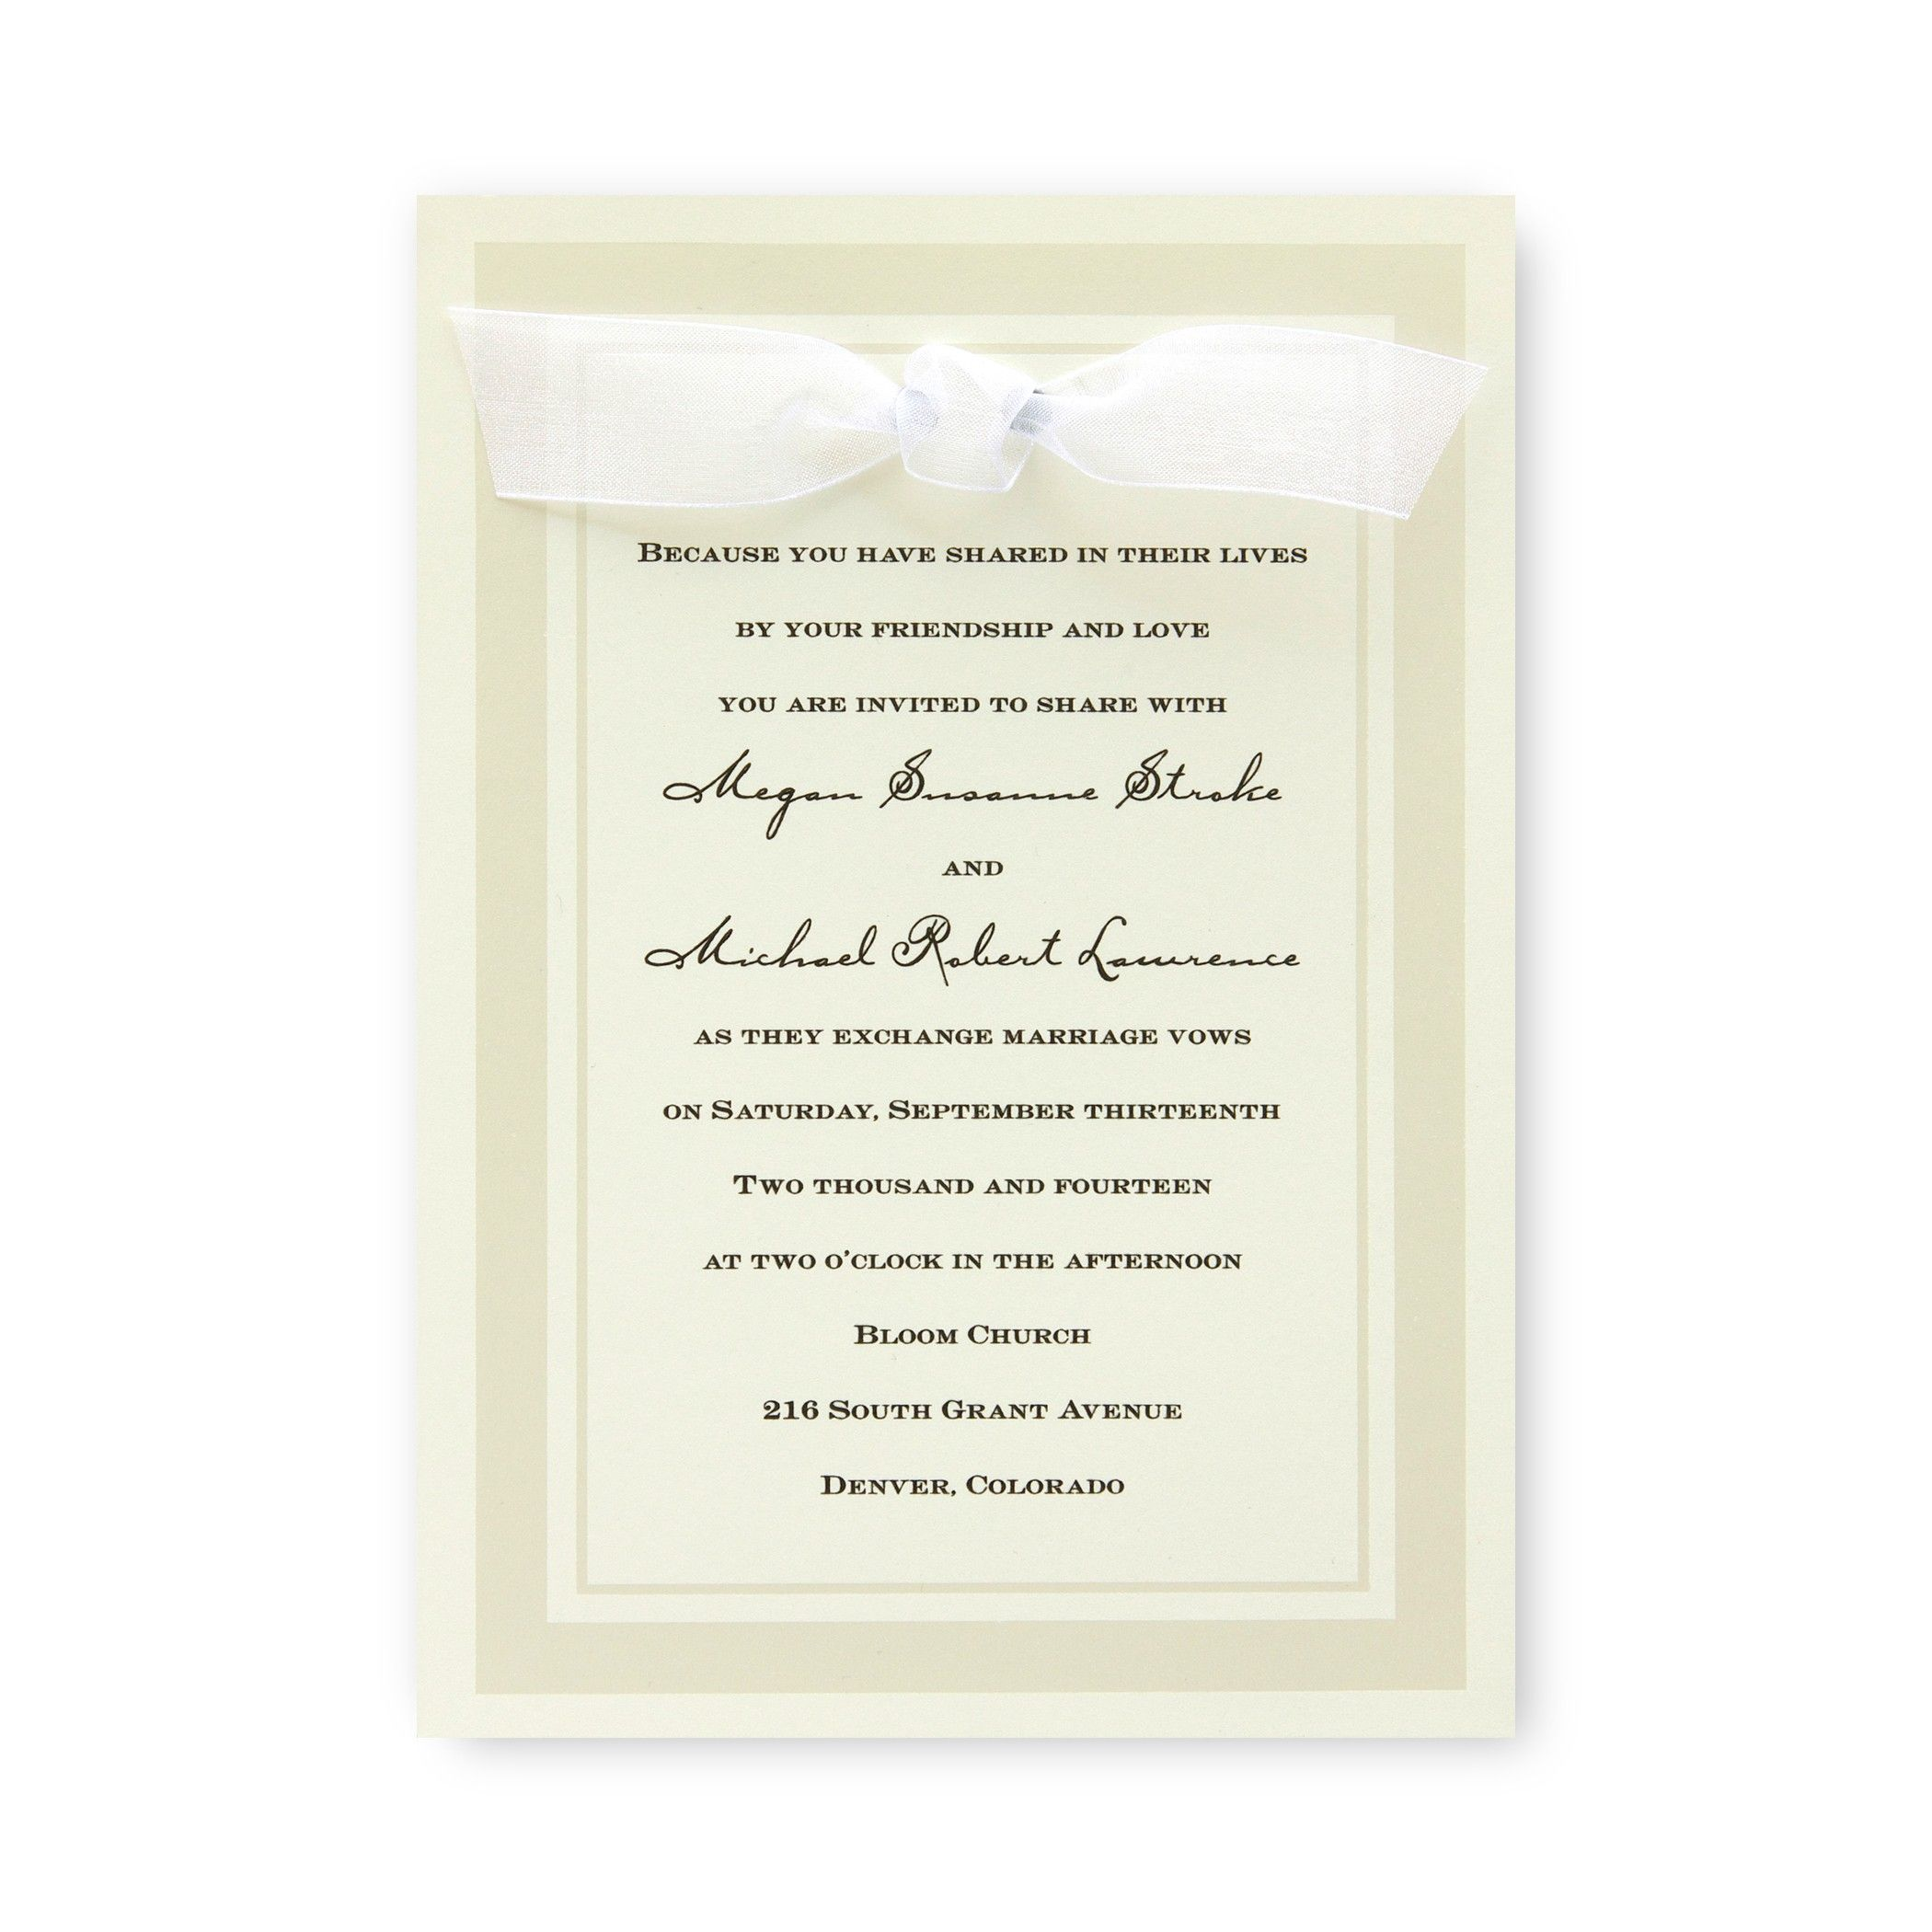 Claridge Wedding Invitations by TheAmericanWedding.com ecru or white ...